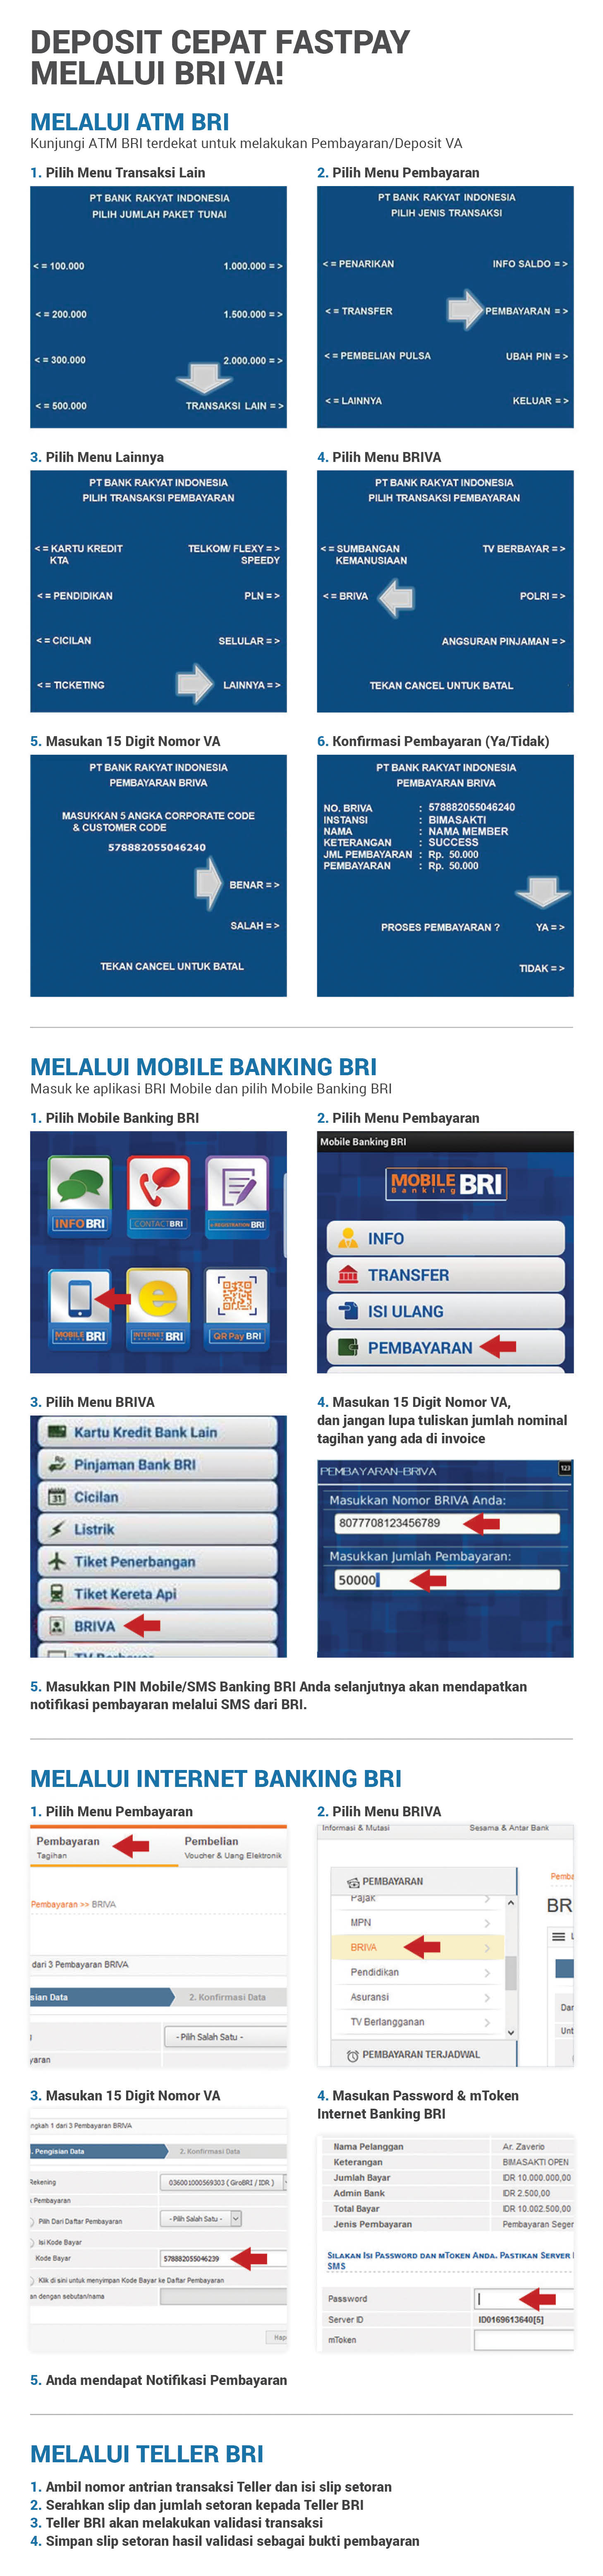 Tutorial deposit VA Virtual Account BRIVA deposit cepat